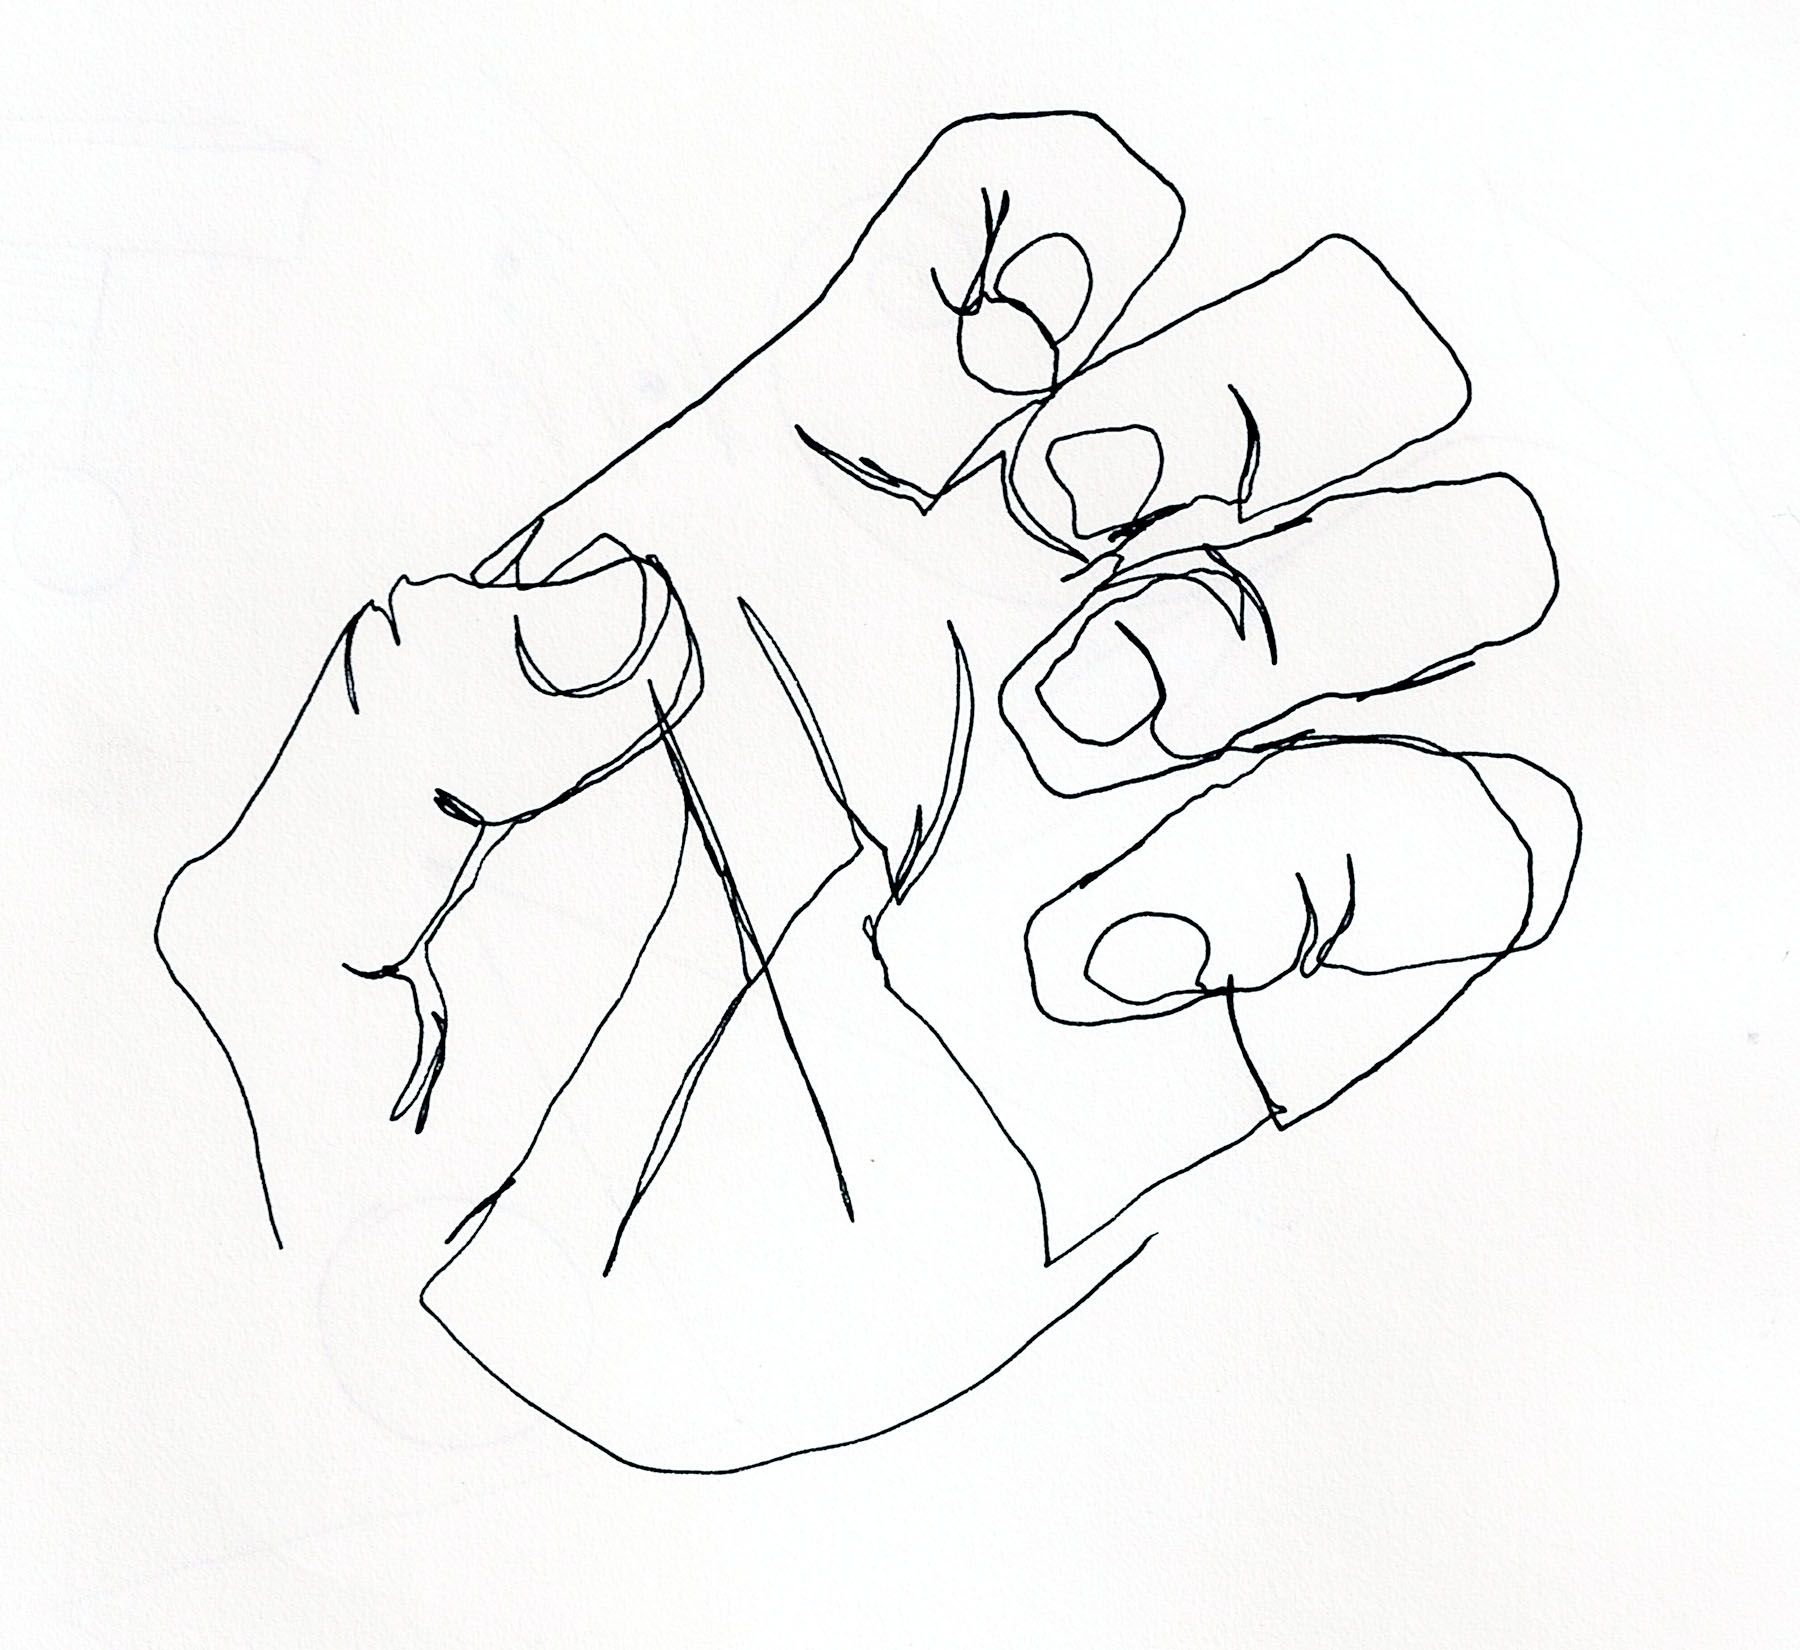 Contour Line Drawing Hand